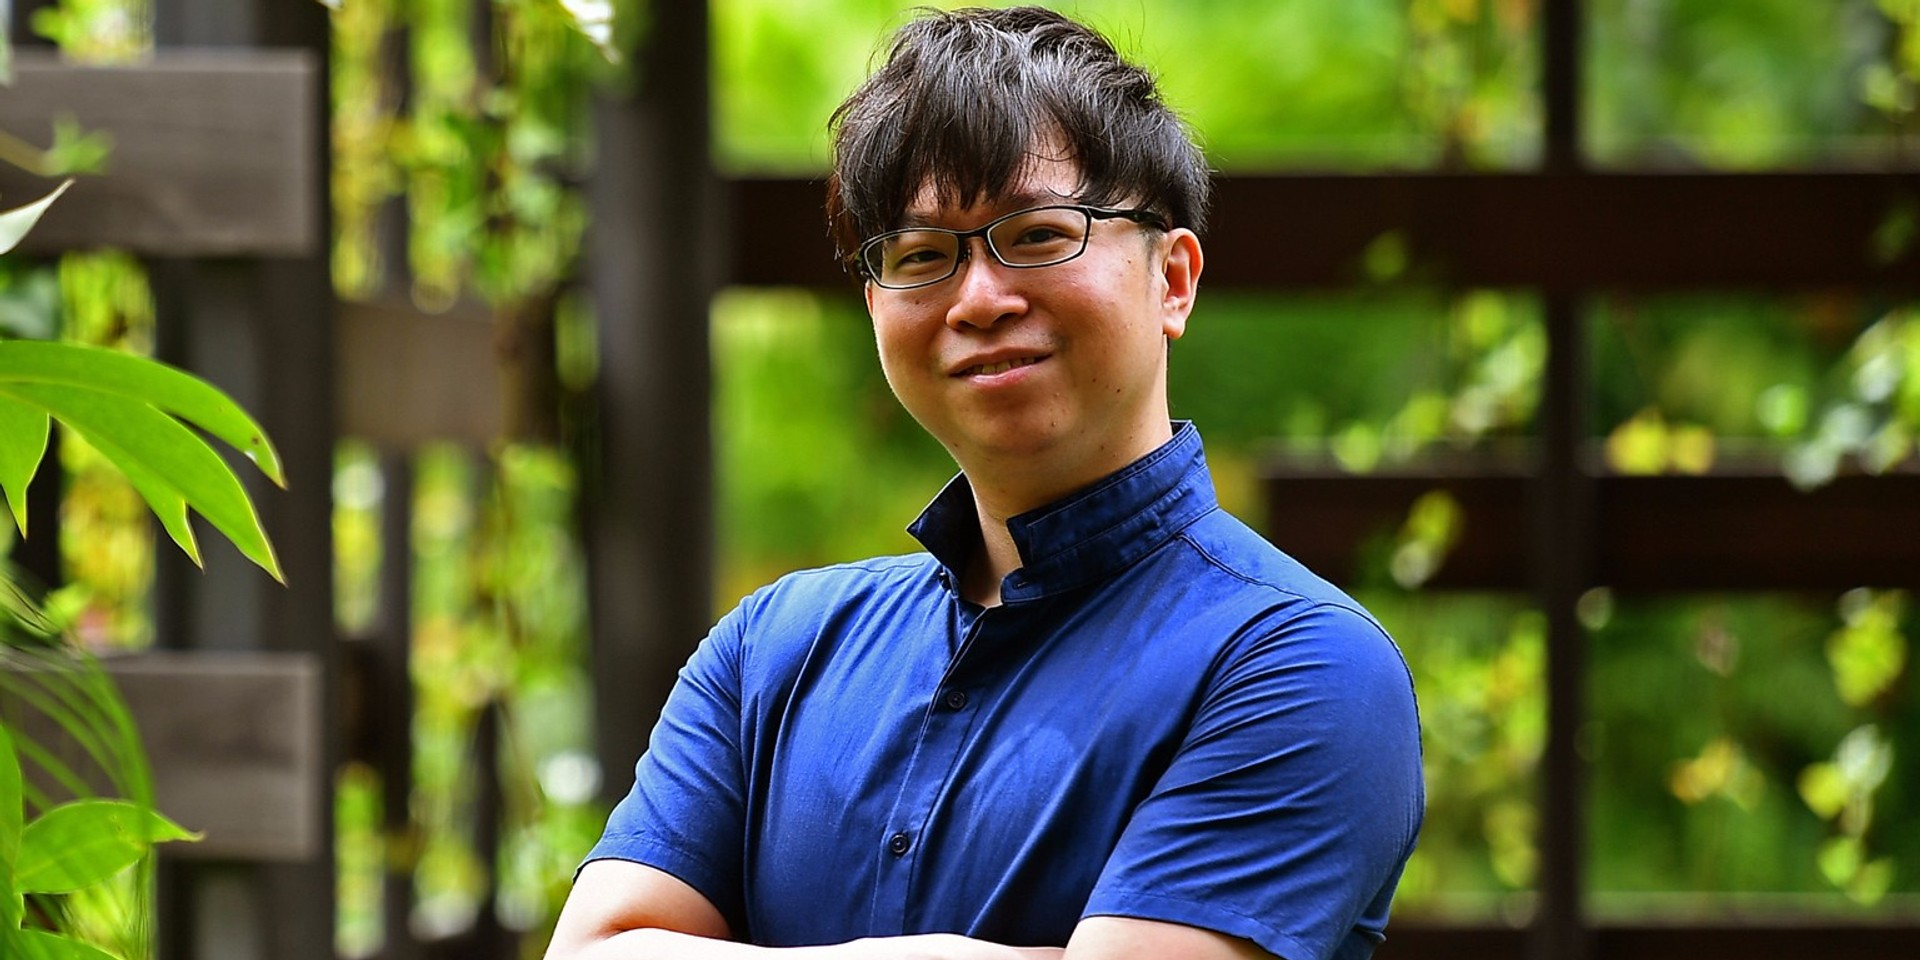 Singaporean named as first Asian to conduct the Nuremberg Symphony Orchestra